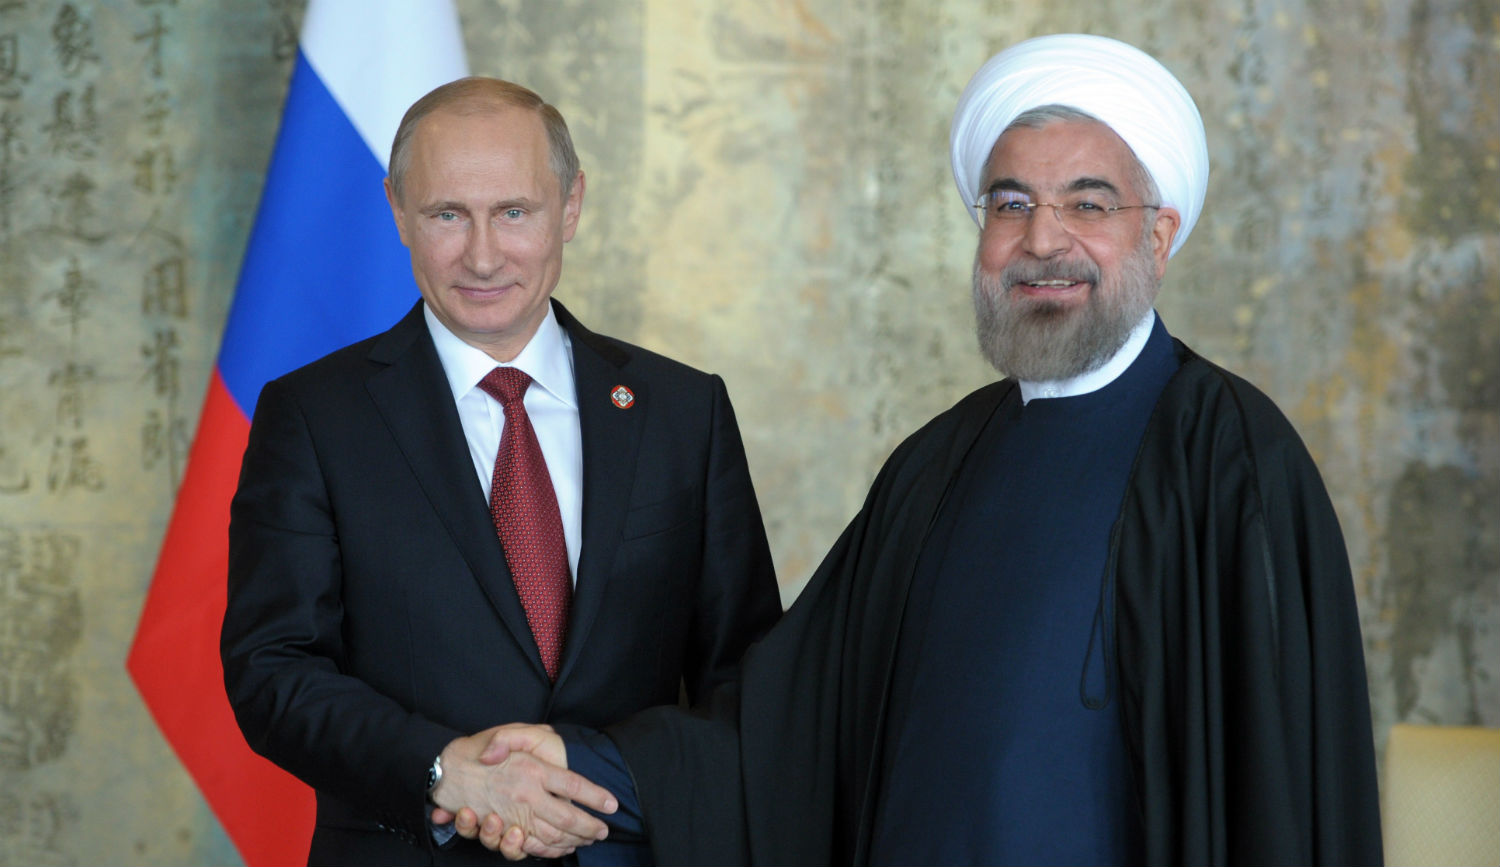 Russian president Vladimir Putin with Iranian president Hassan Rouhani in Shanghai on May 21, 2014. ALEXEY DRUZHININ/AFP/Getty Images.